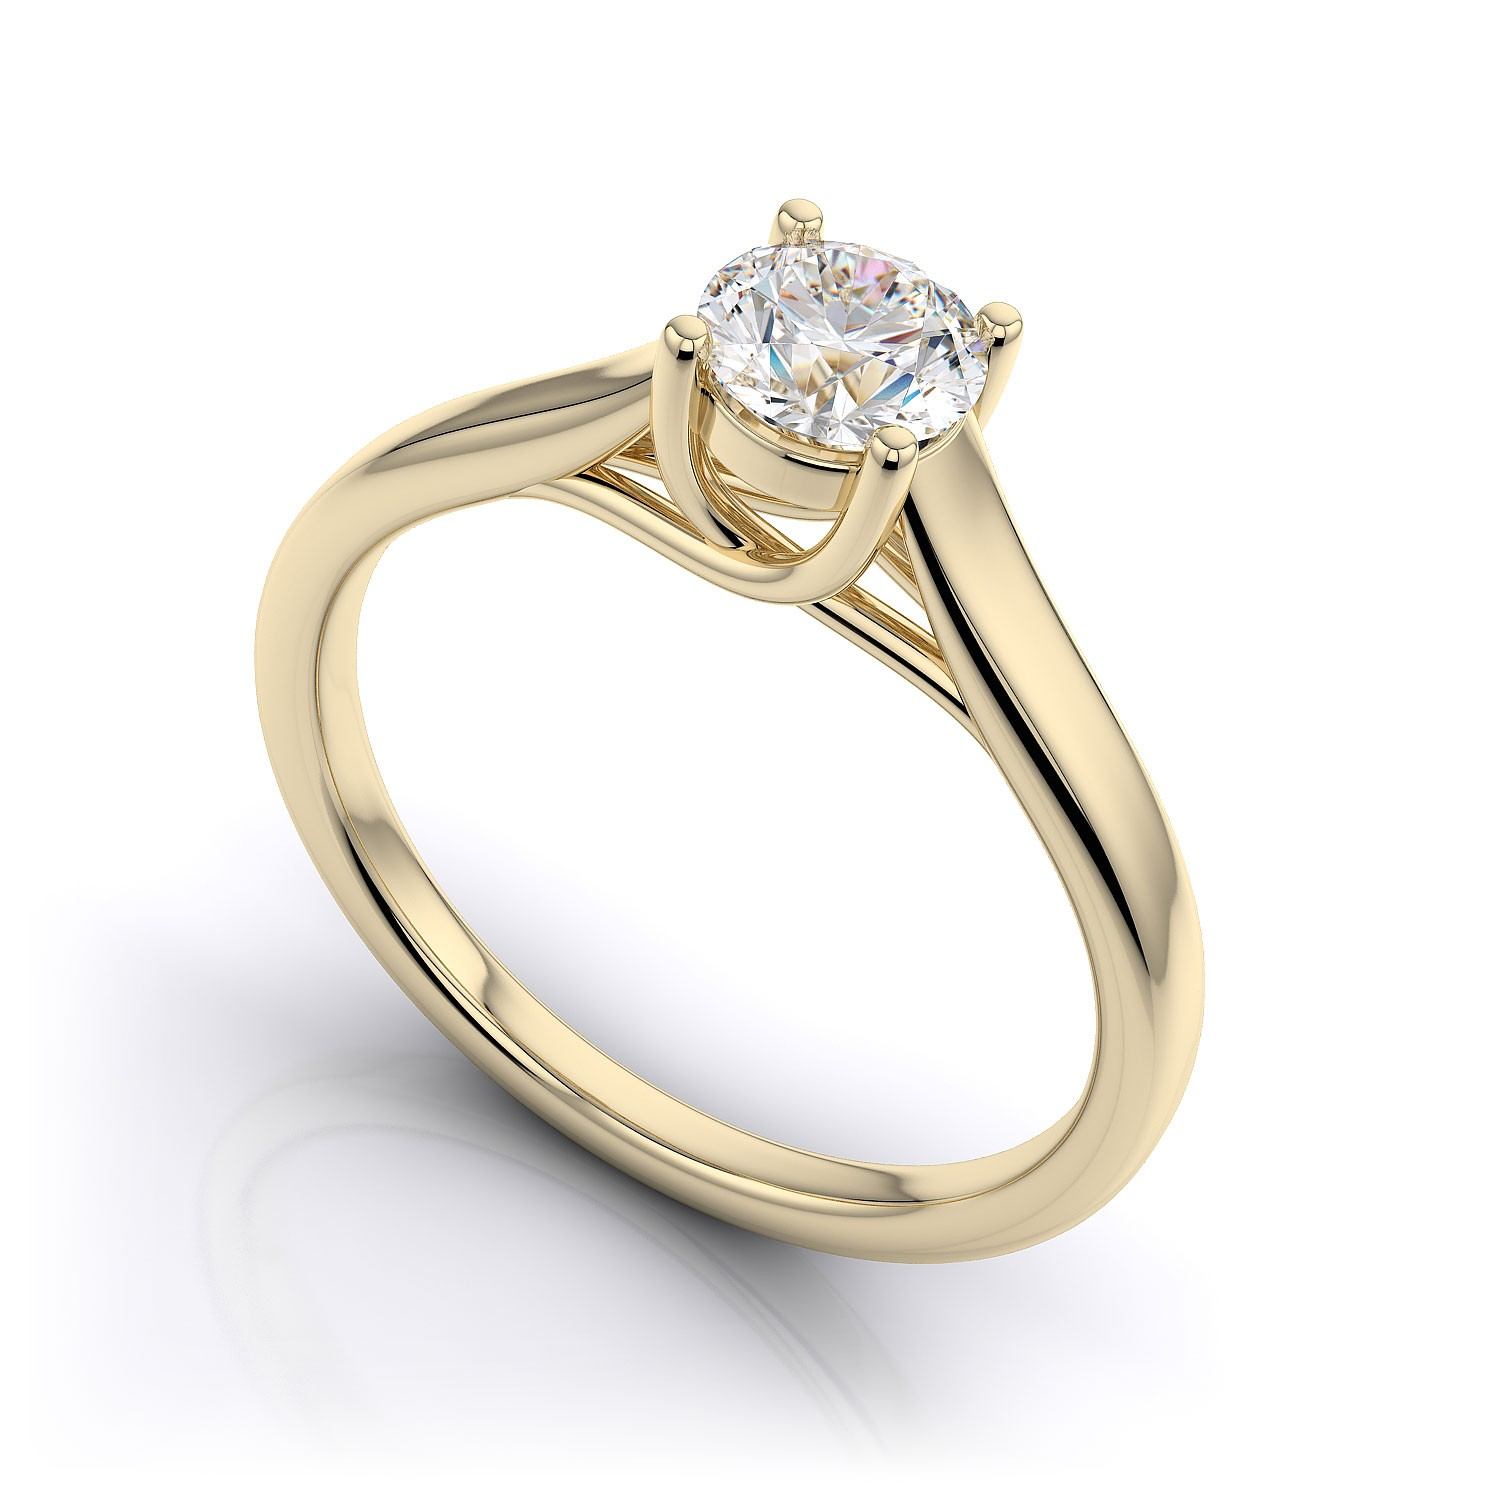 Top Jewelers Engagement Ring